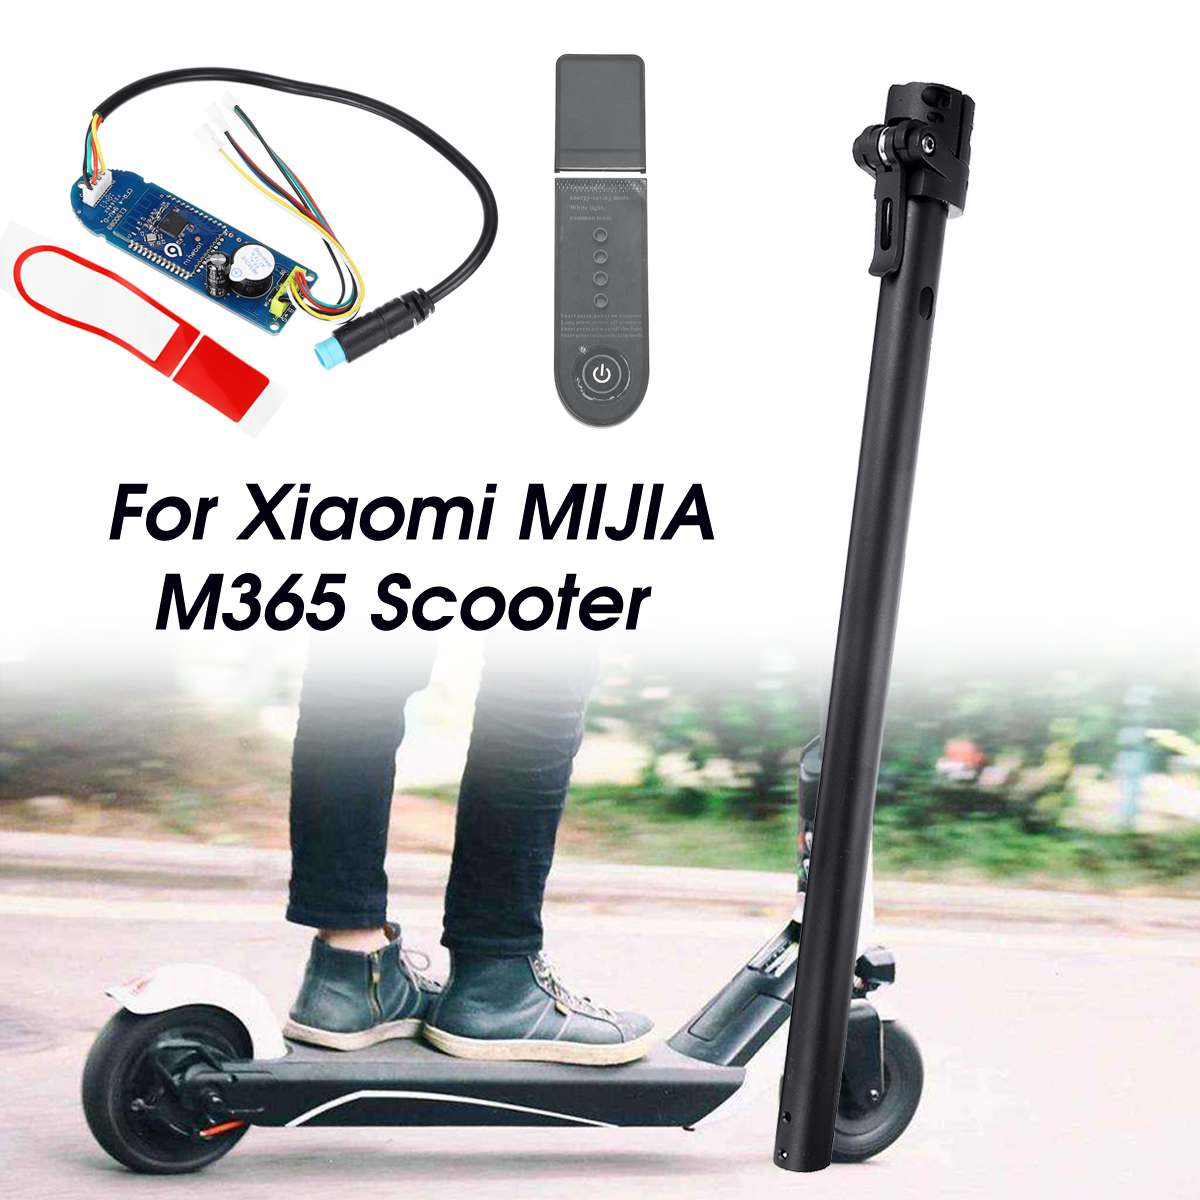 For Xiaomi M365 Scooter Folding Pole Circuit Board Dashboard Cover Replace Parts